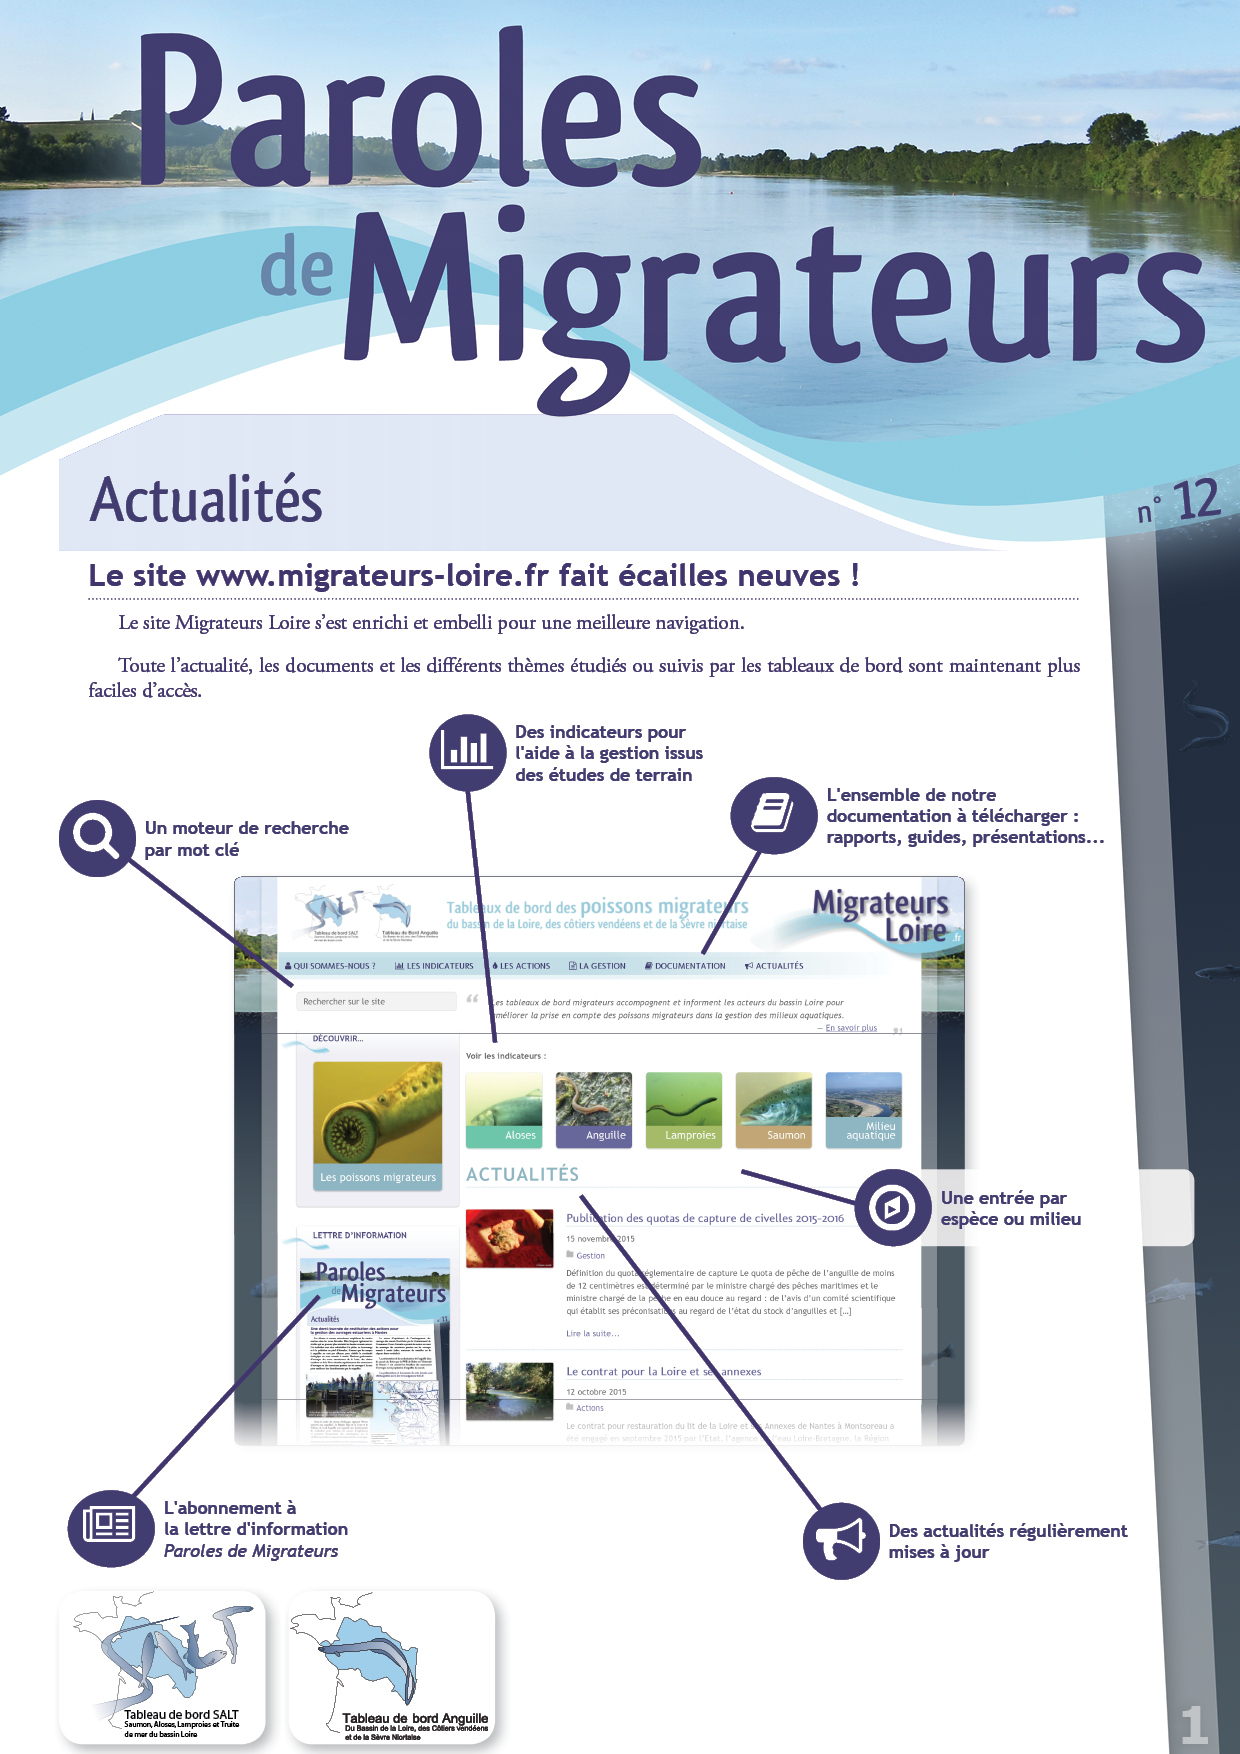 Paroles de Migrateurs N12